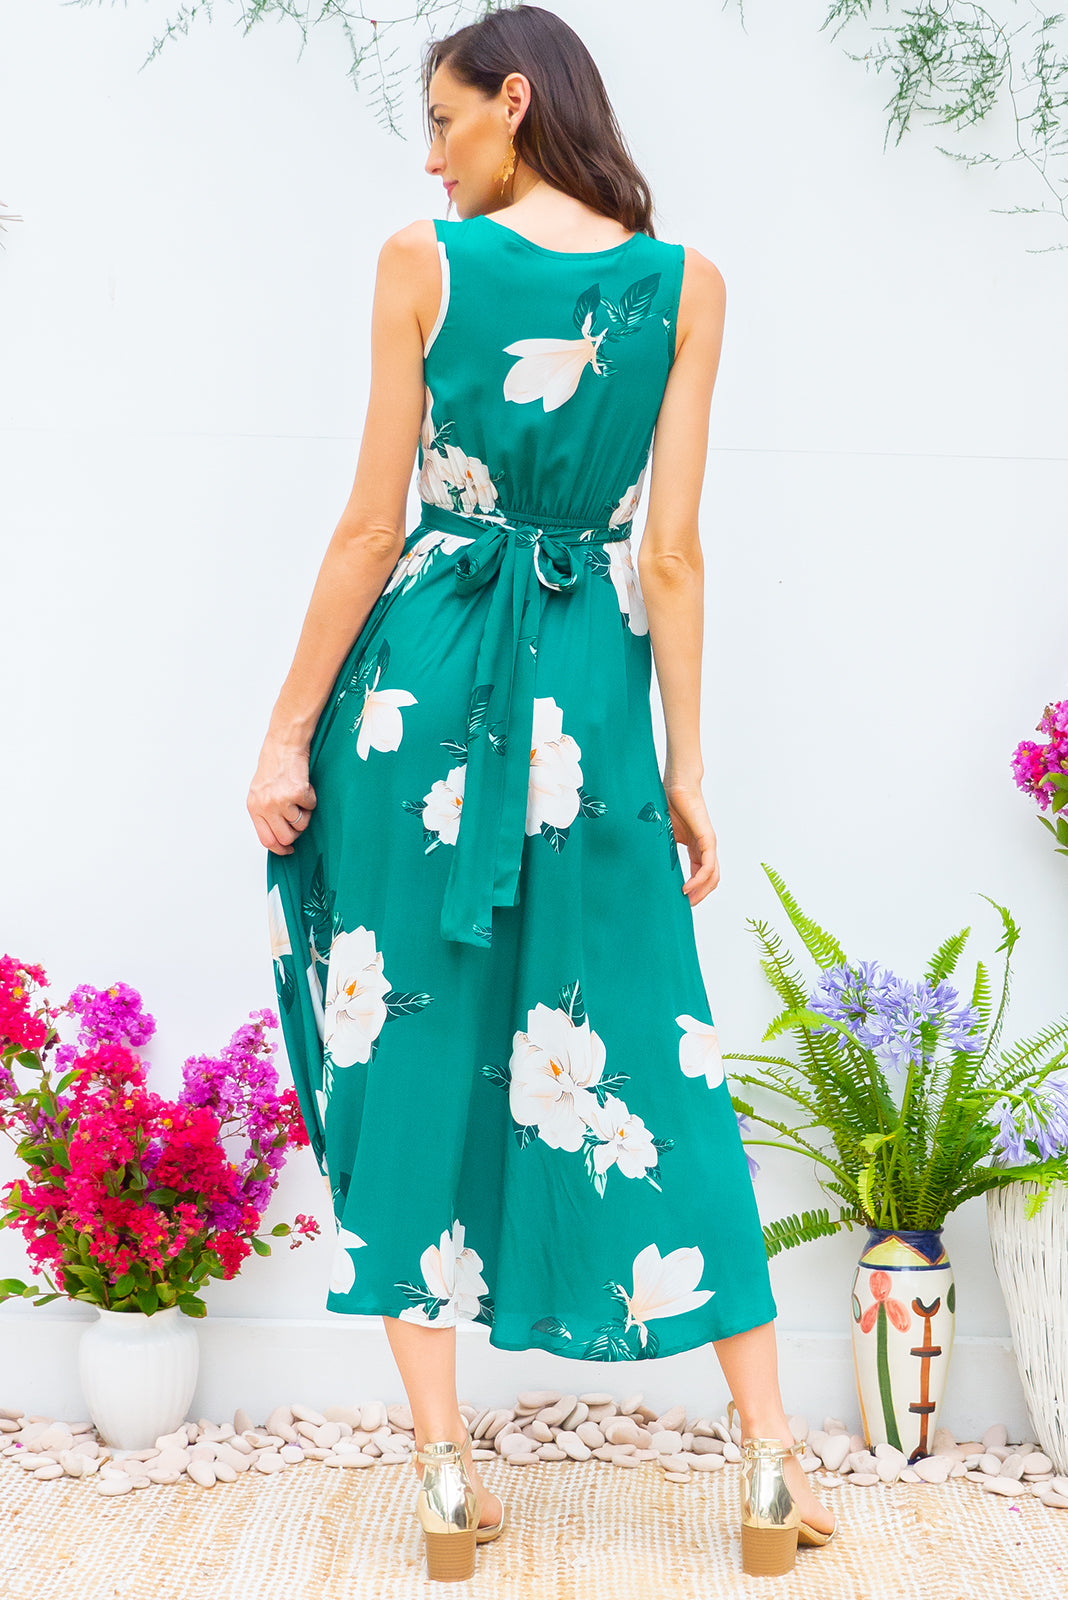 Darling Emerald Green Dress tie front wrap dress with an elastic waist and a plunging v neckline made from a 100% rayon fabric in a stunning deep emerald green and gardenia print